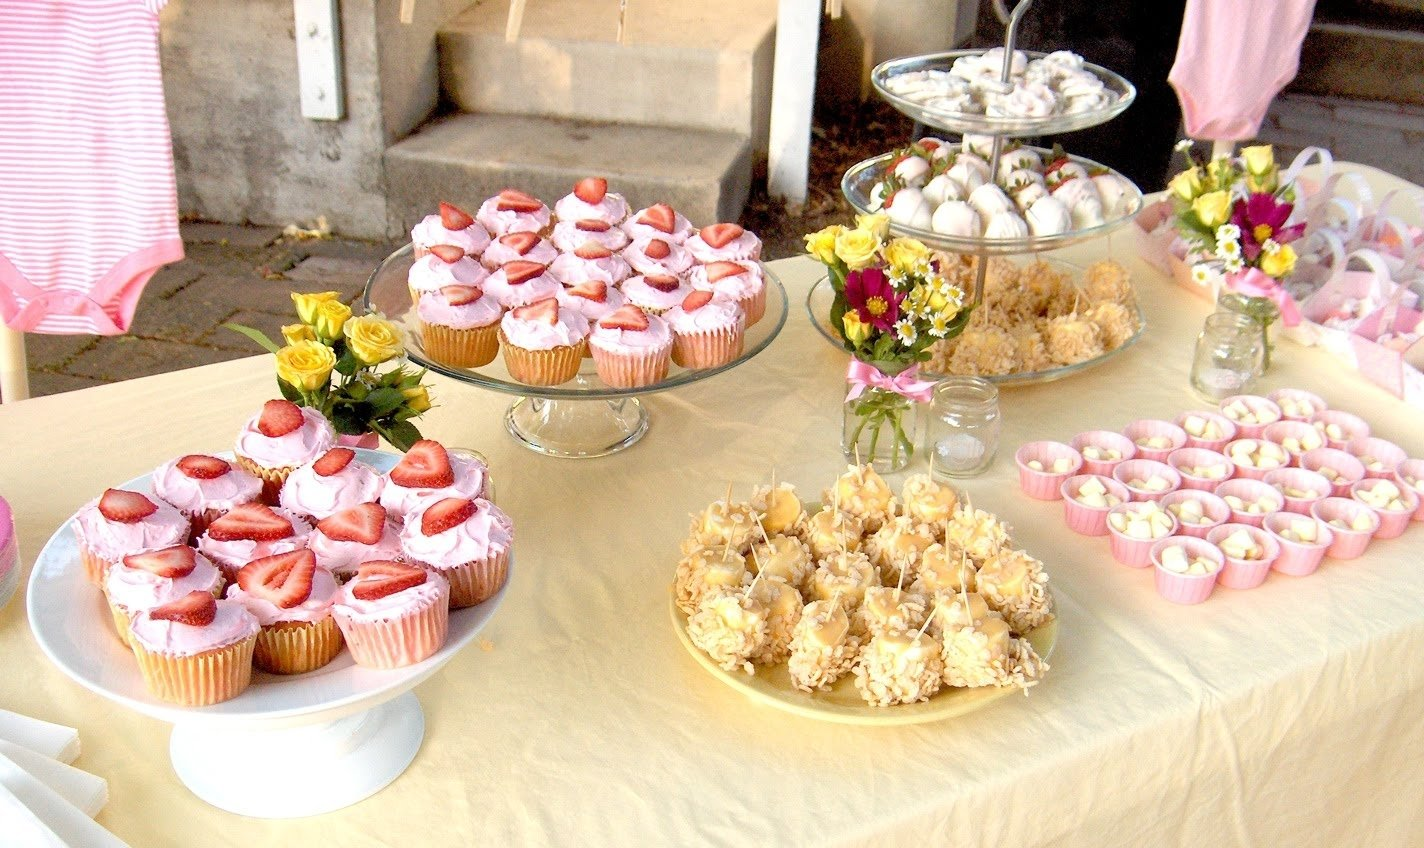 10 Gorgeous Creative Baby Shower Food Ideas trendy idea baby shower food menu ideas wedding 1